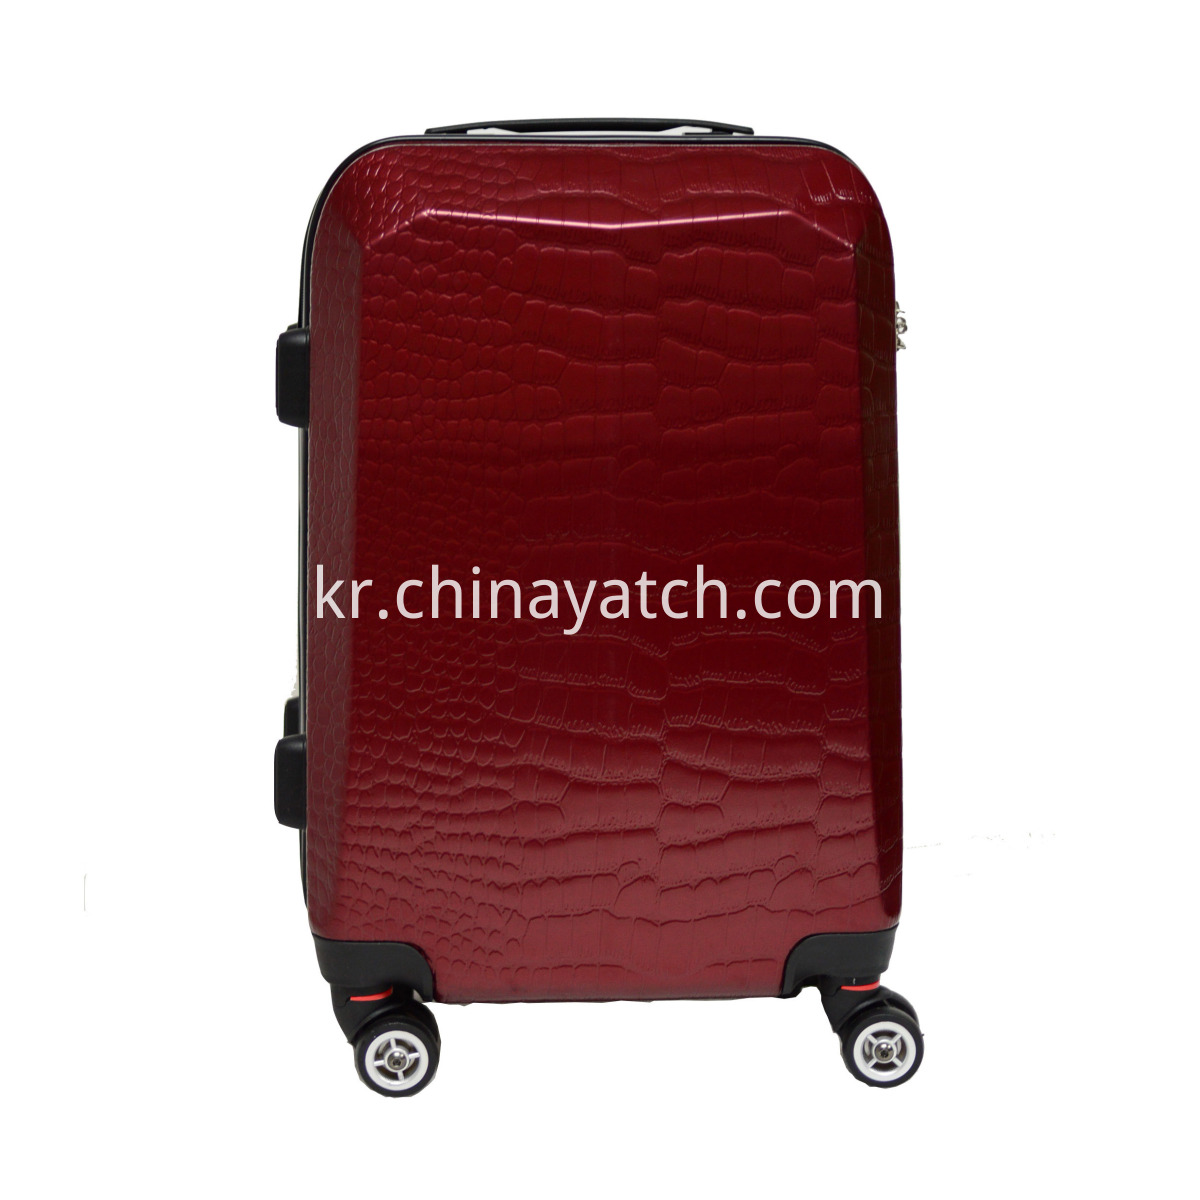 ABS Trolley Luggage With Fashion And Latest Croco Grain